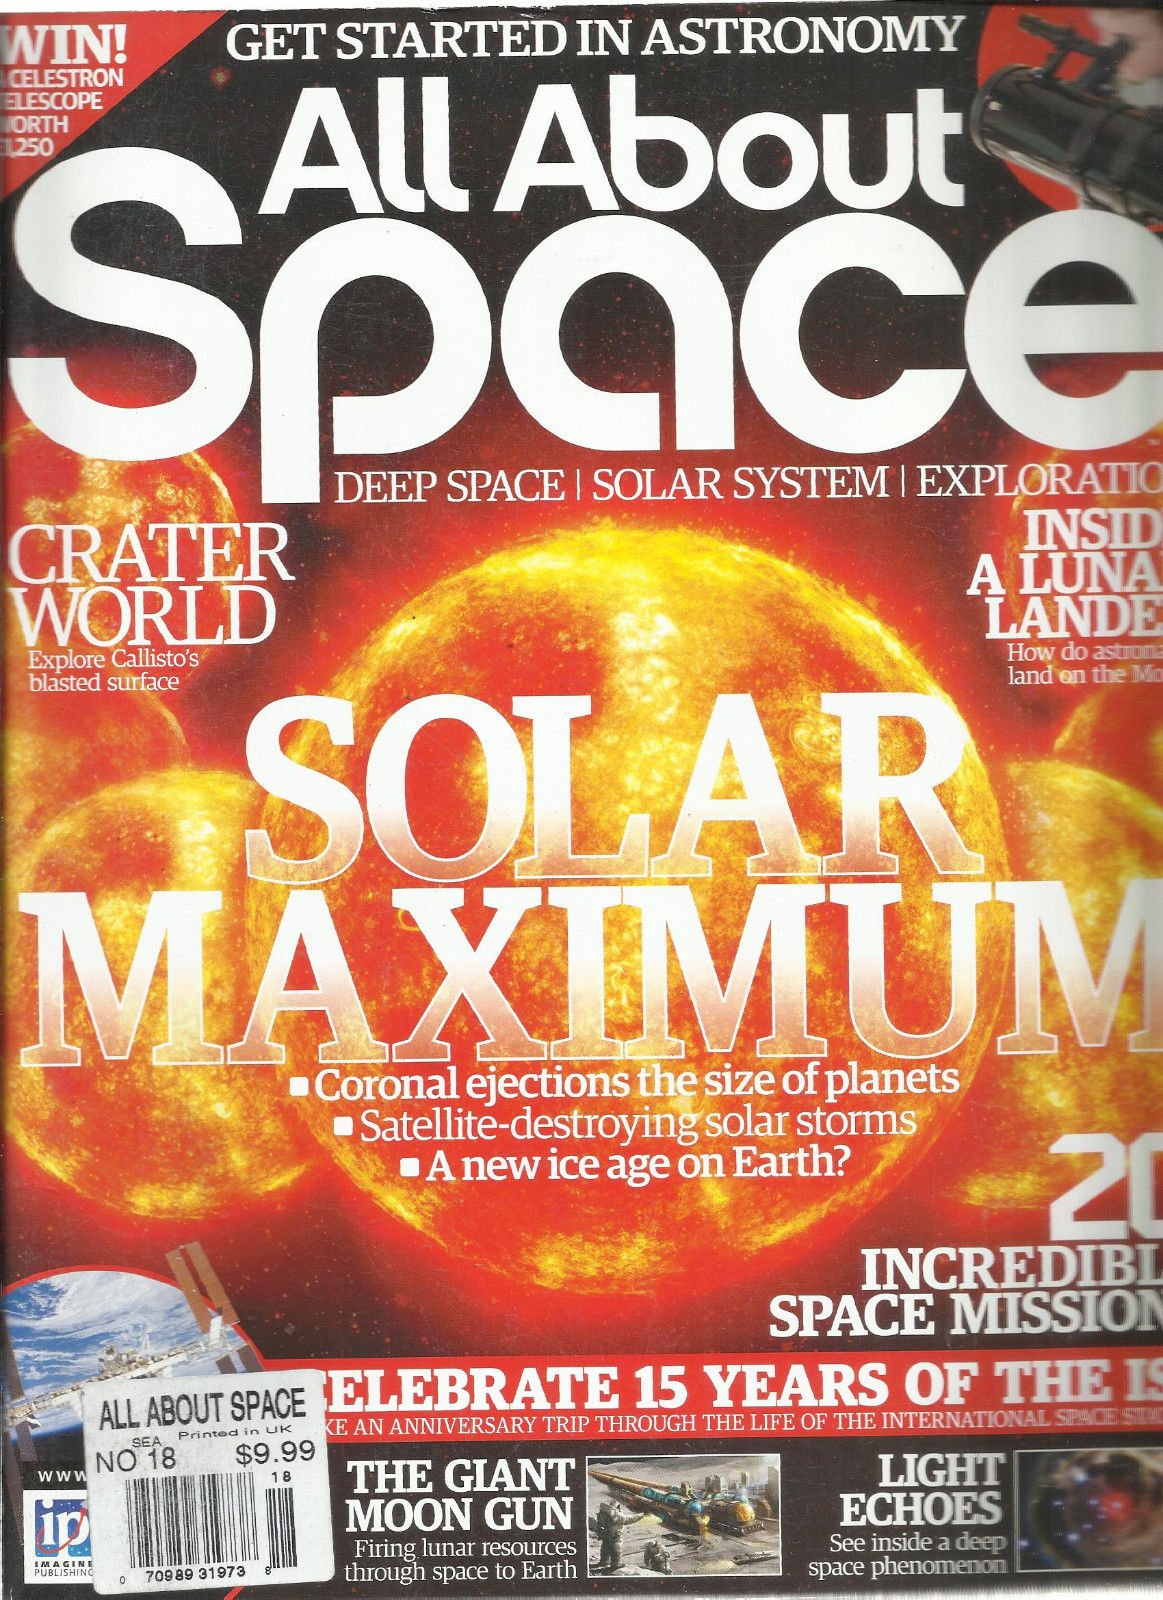 ALL ABOUT SPACE, NO.18 ( DEEP SPACE SOLAR SYSTEM EXPLORATION * CRATER WORLD )